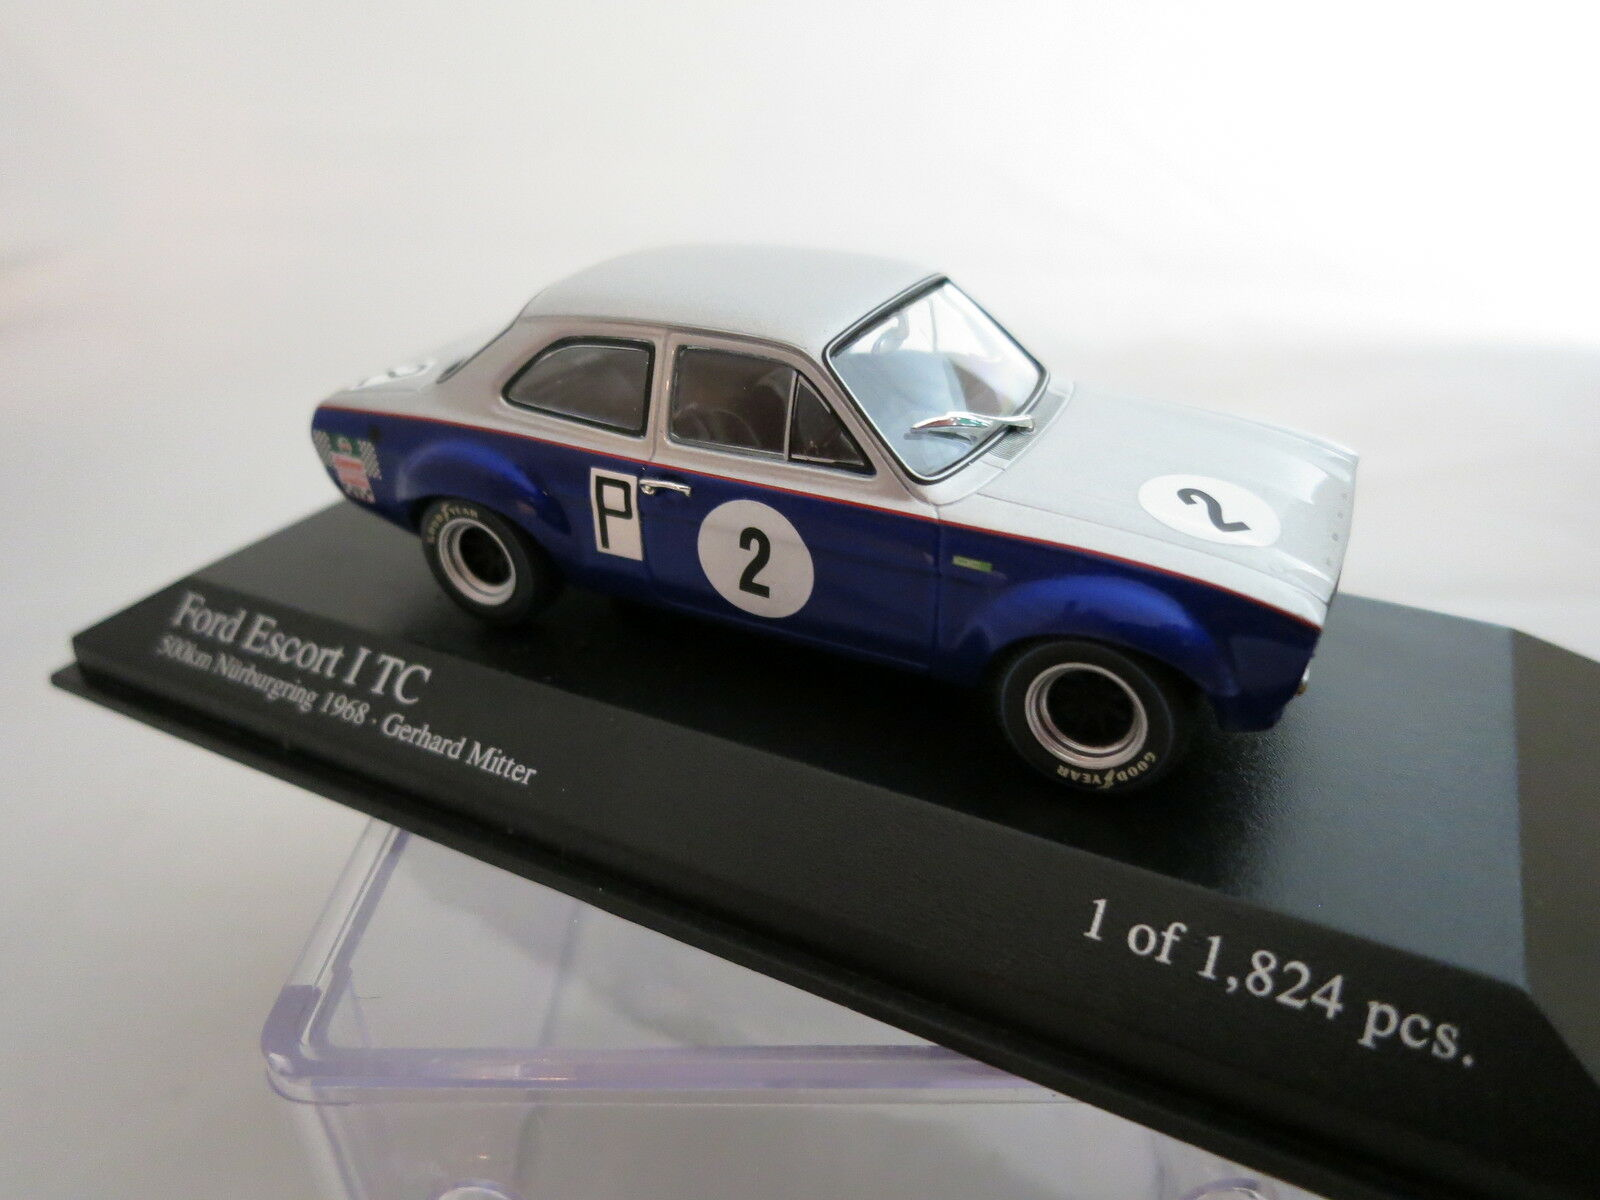 Minichamps Ford Escort I tc Nurburgring 1968 Gerhard Mitter 1 43 top & OVP